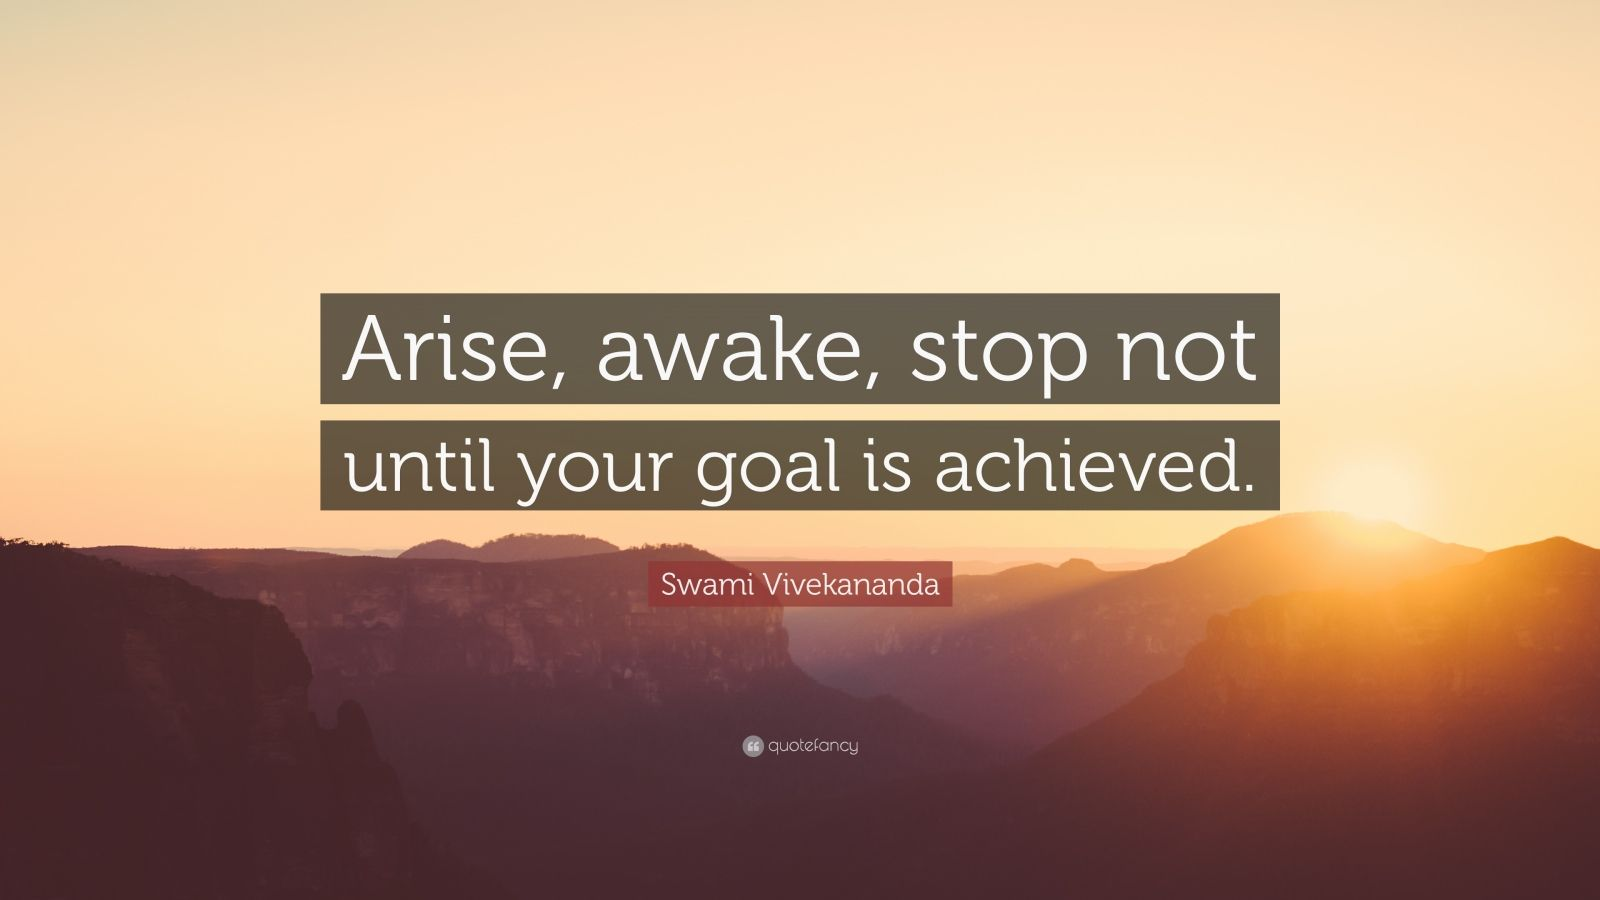 Wallpapers With Work Quotes Swami Vivekananda Quotes 52 Wallpapers Quotefancy